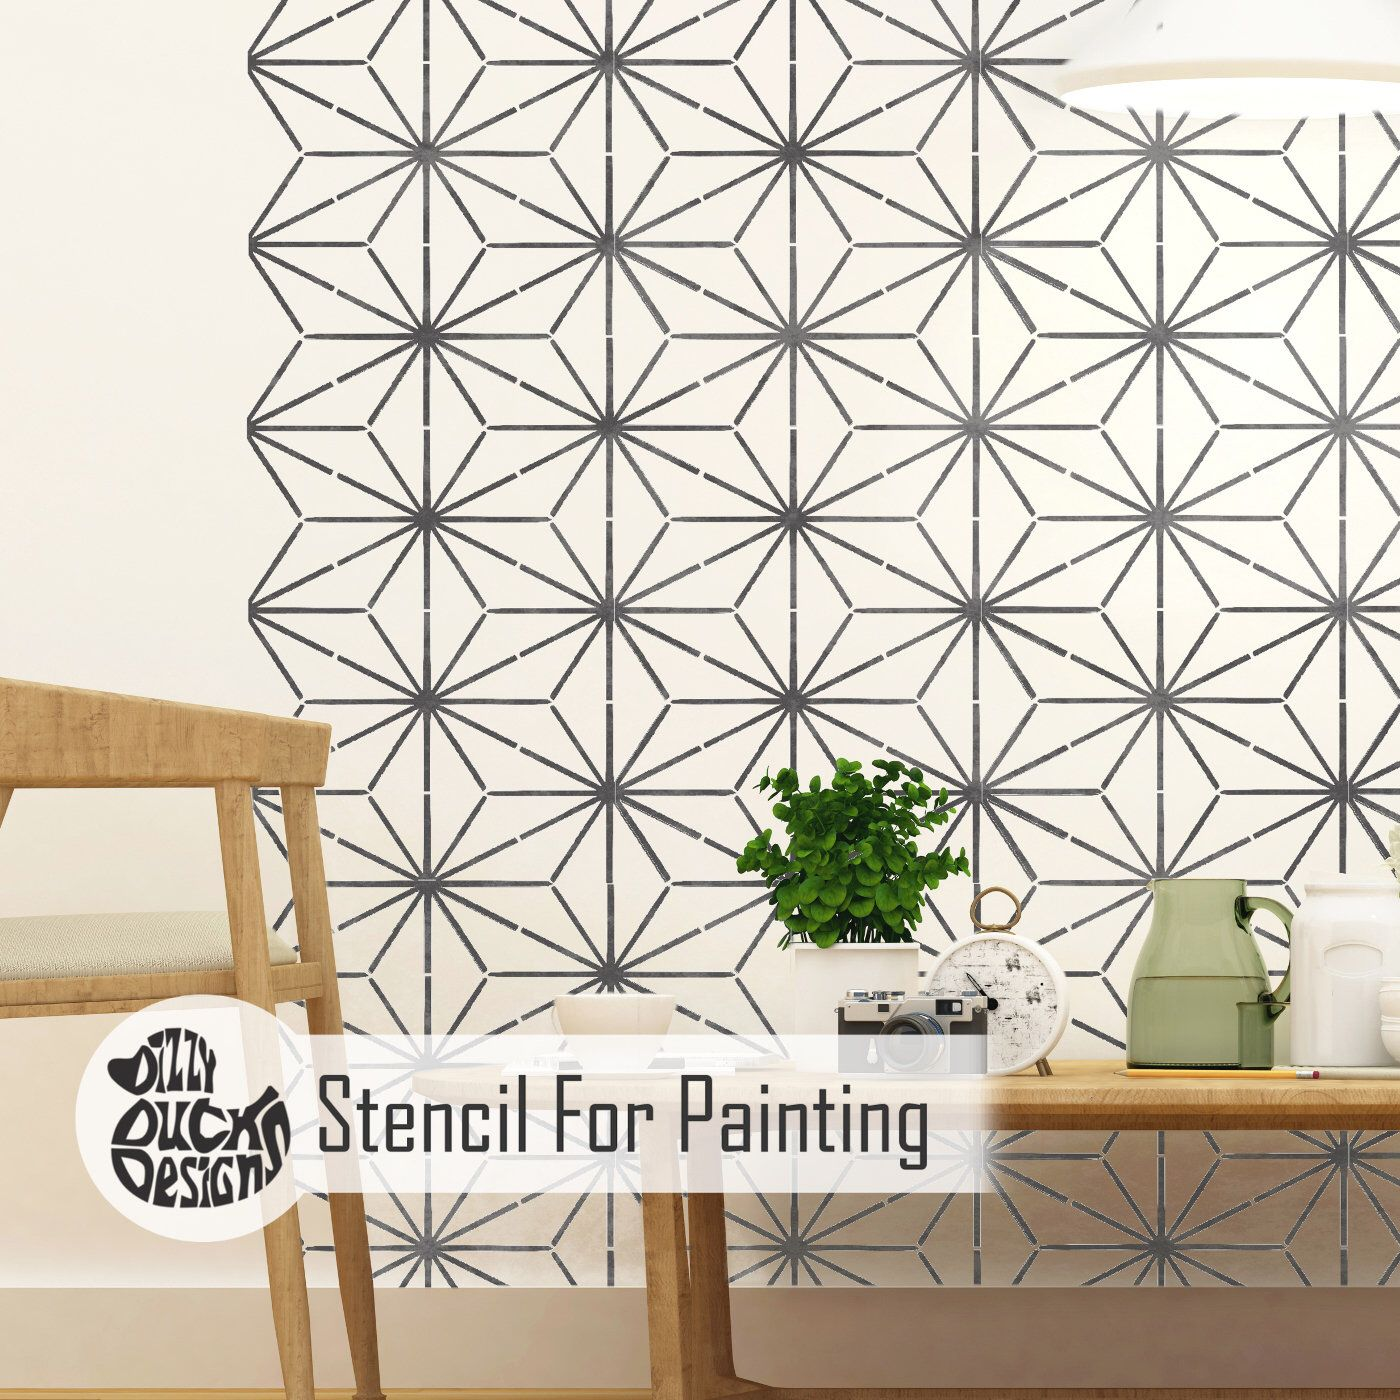 Kyoto Stencil Modern Oriental Eastern Japanese Wall Furniture Floor Craft Stencil For Painting Kyot01 Geometric Stencil Stencils Wall Stenciled Floor